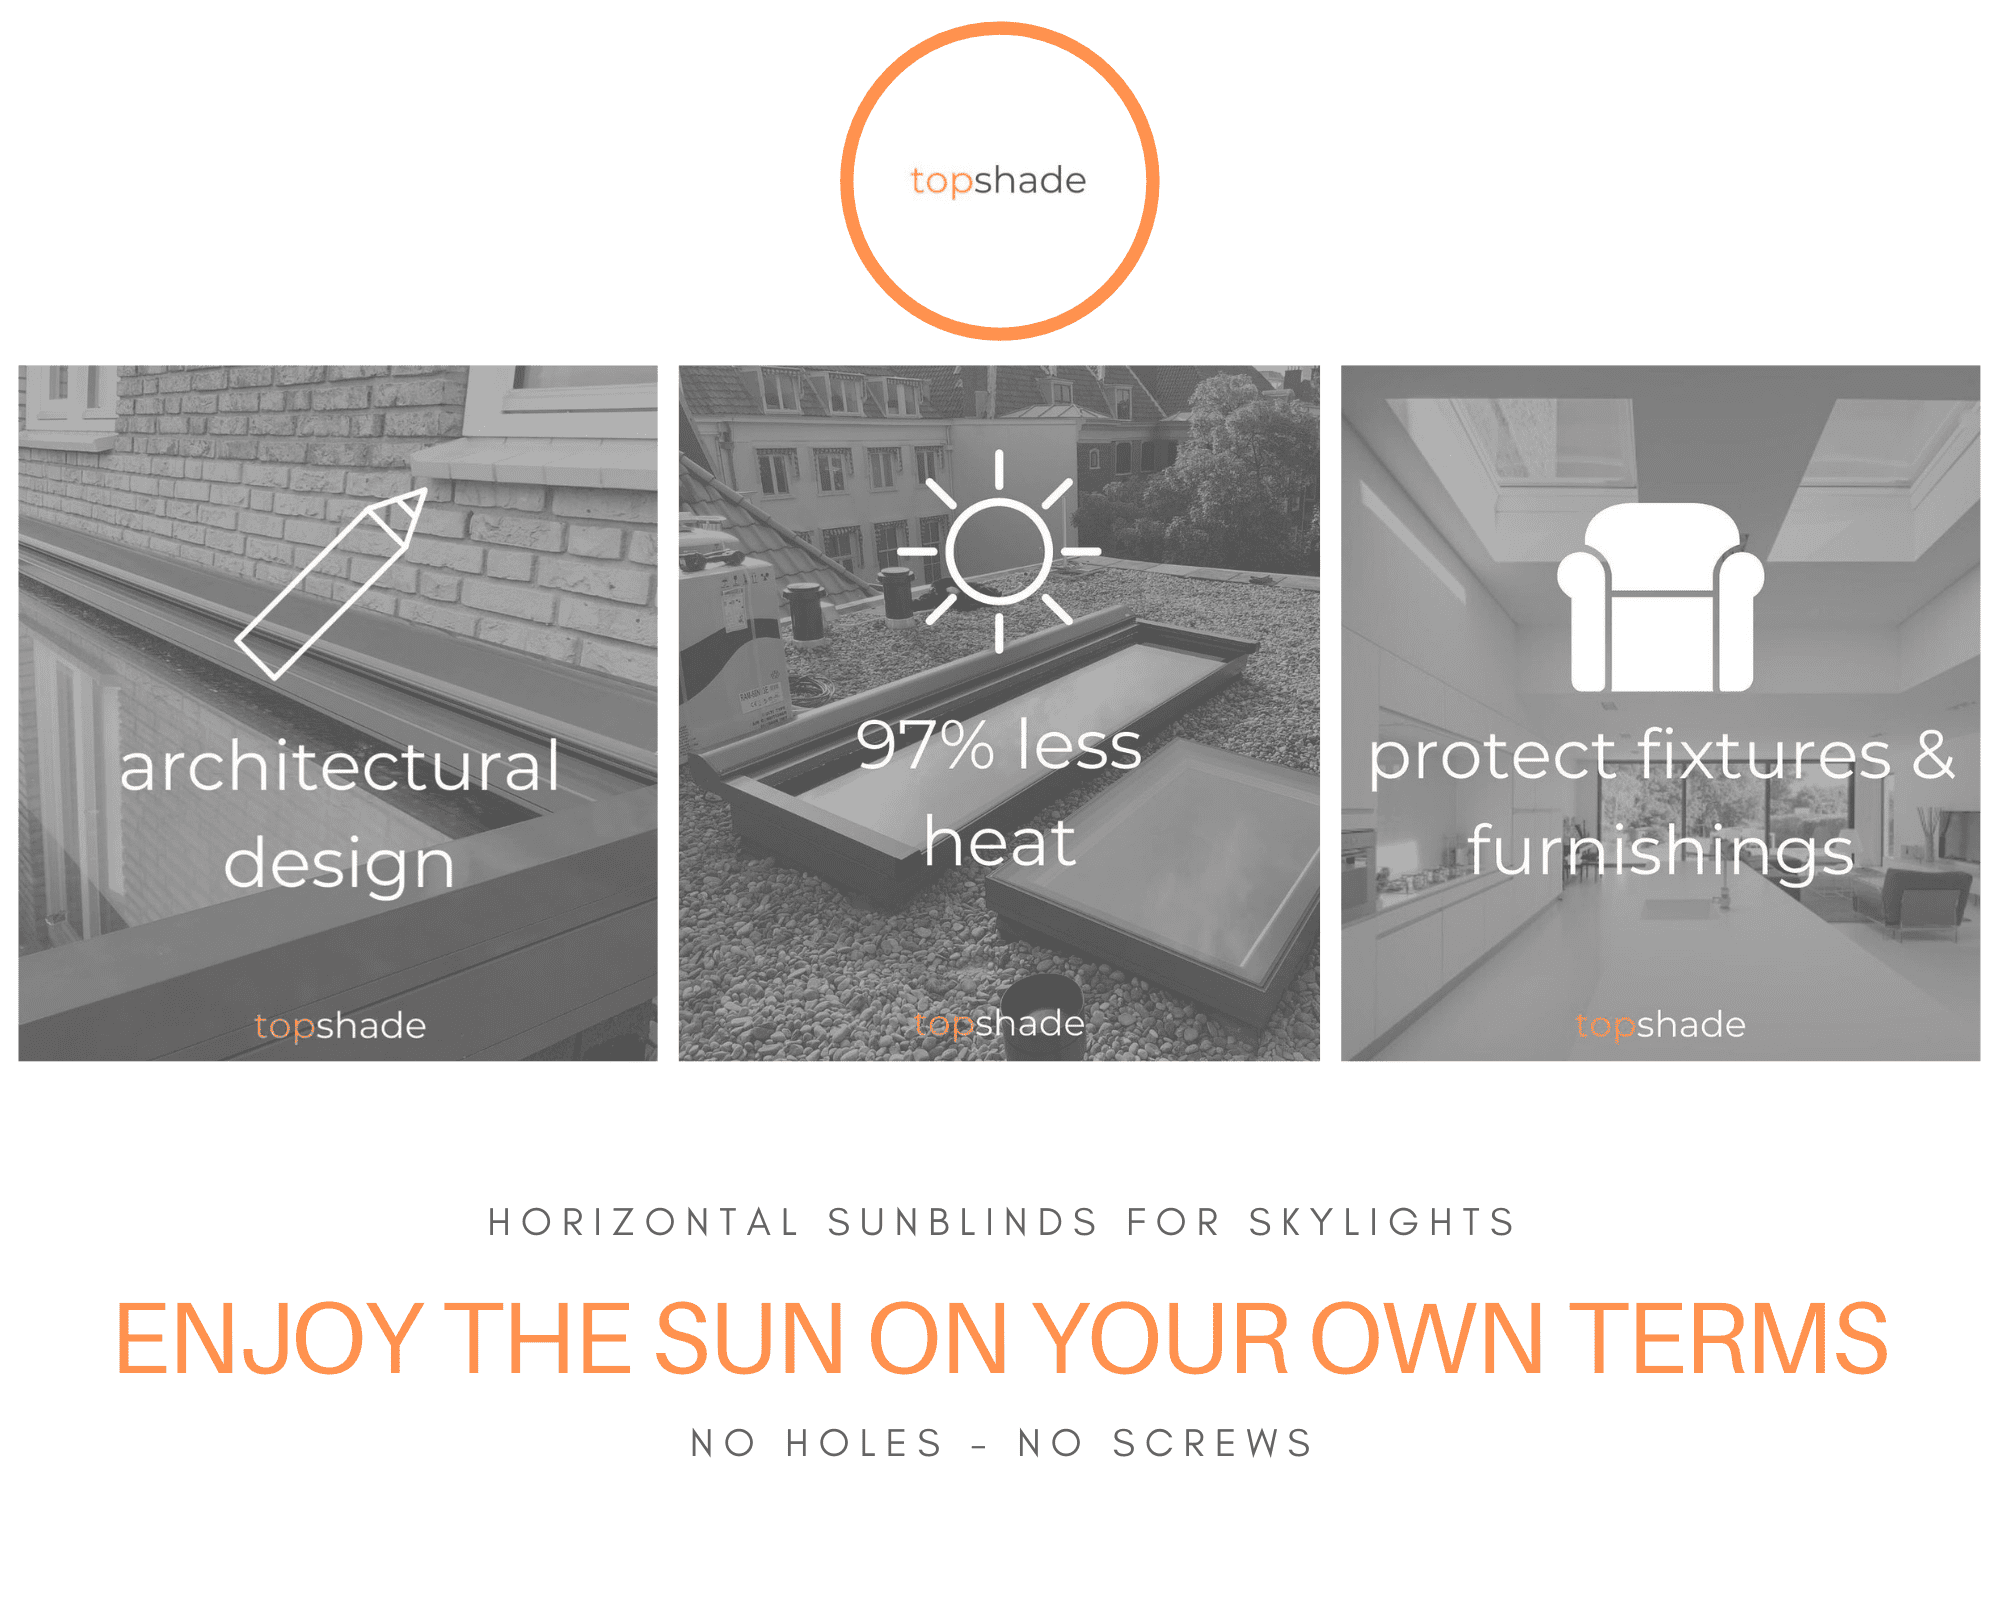 Topshade sunblinds for skylights